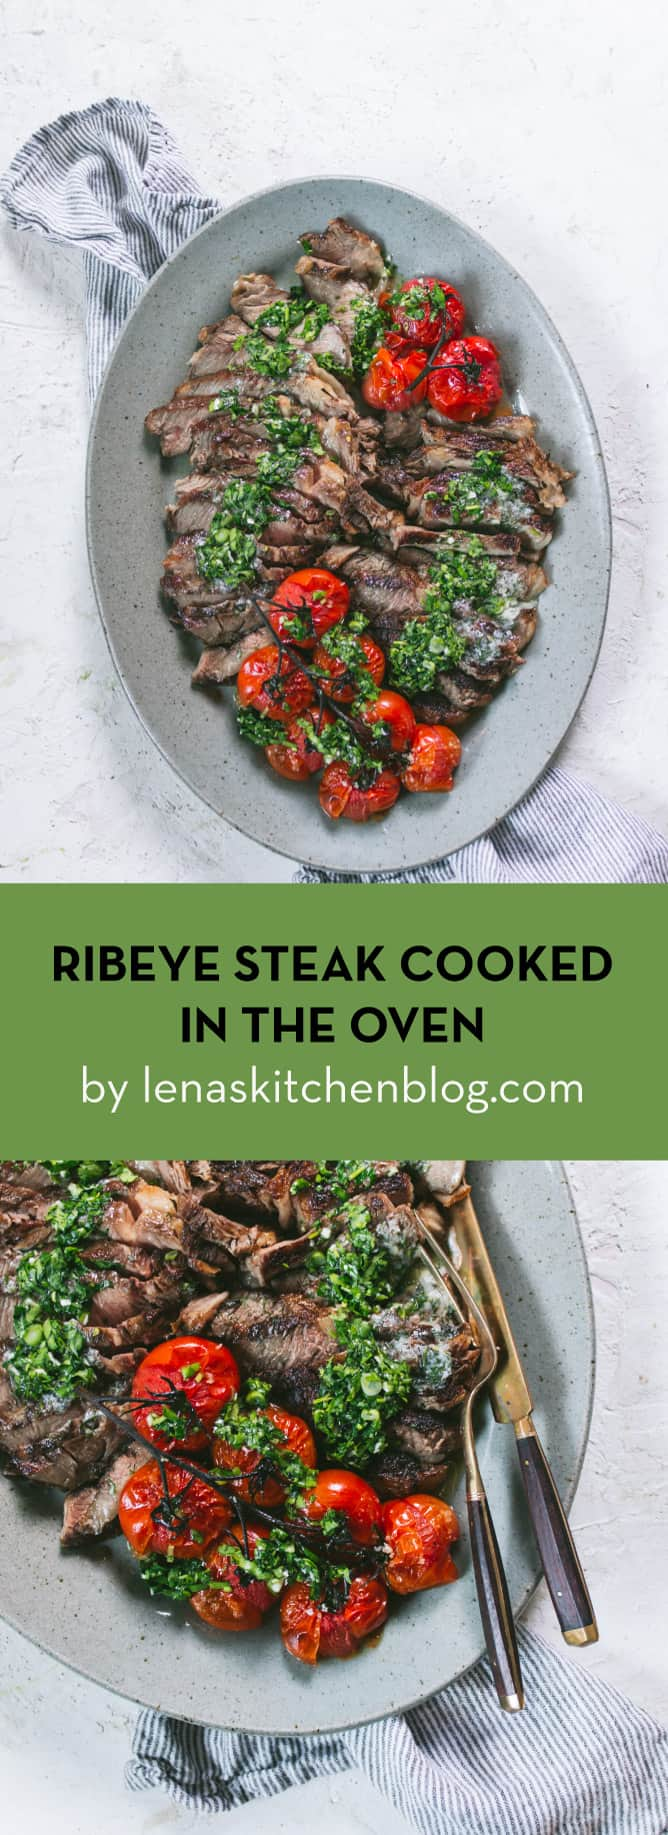 super tasty RIBEYE STEAK COOKED IN THE OVEN